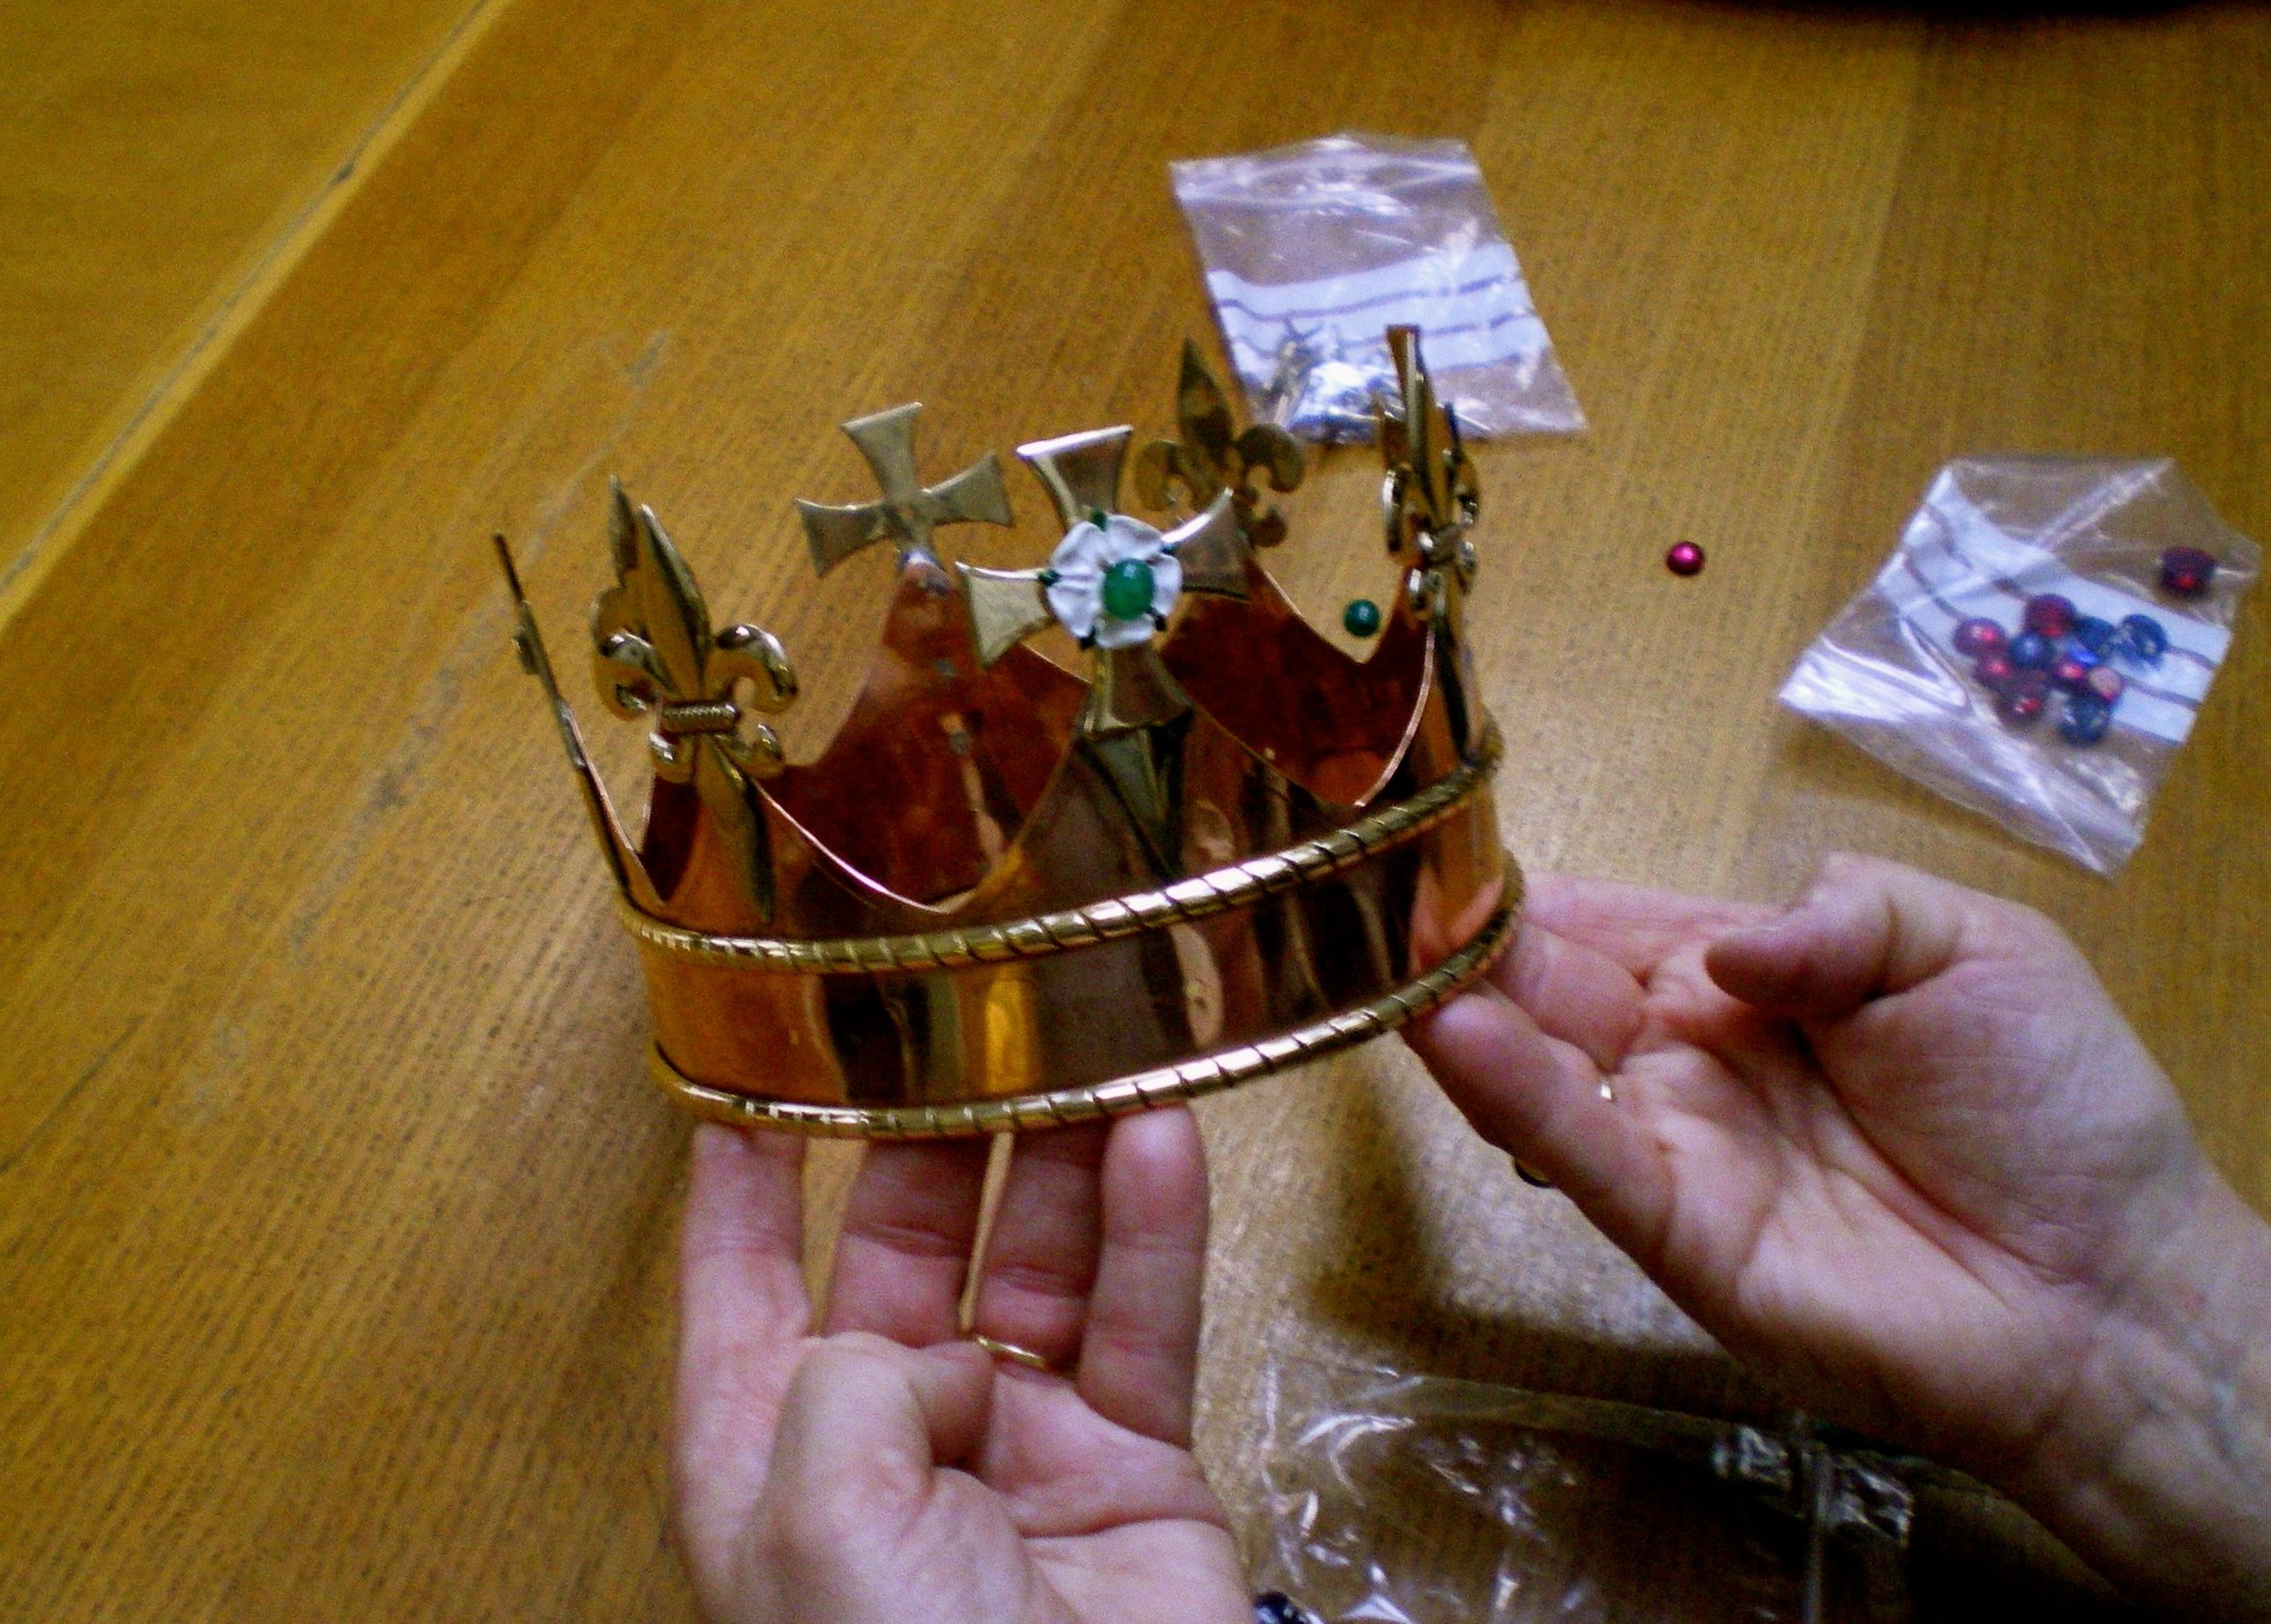 The crown with the emeralds